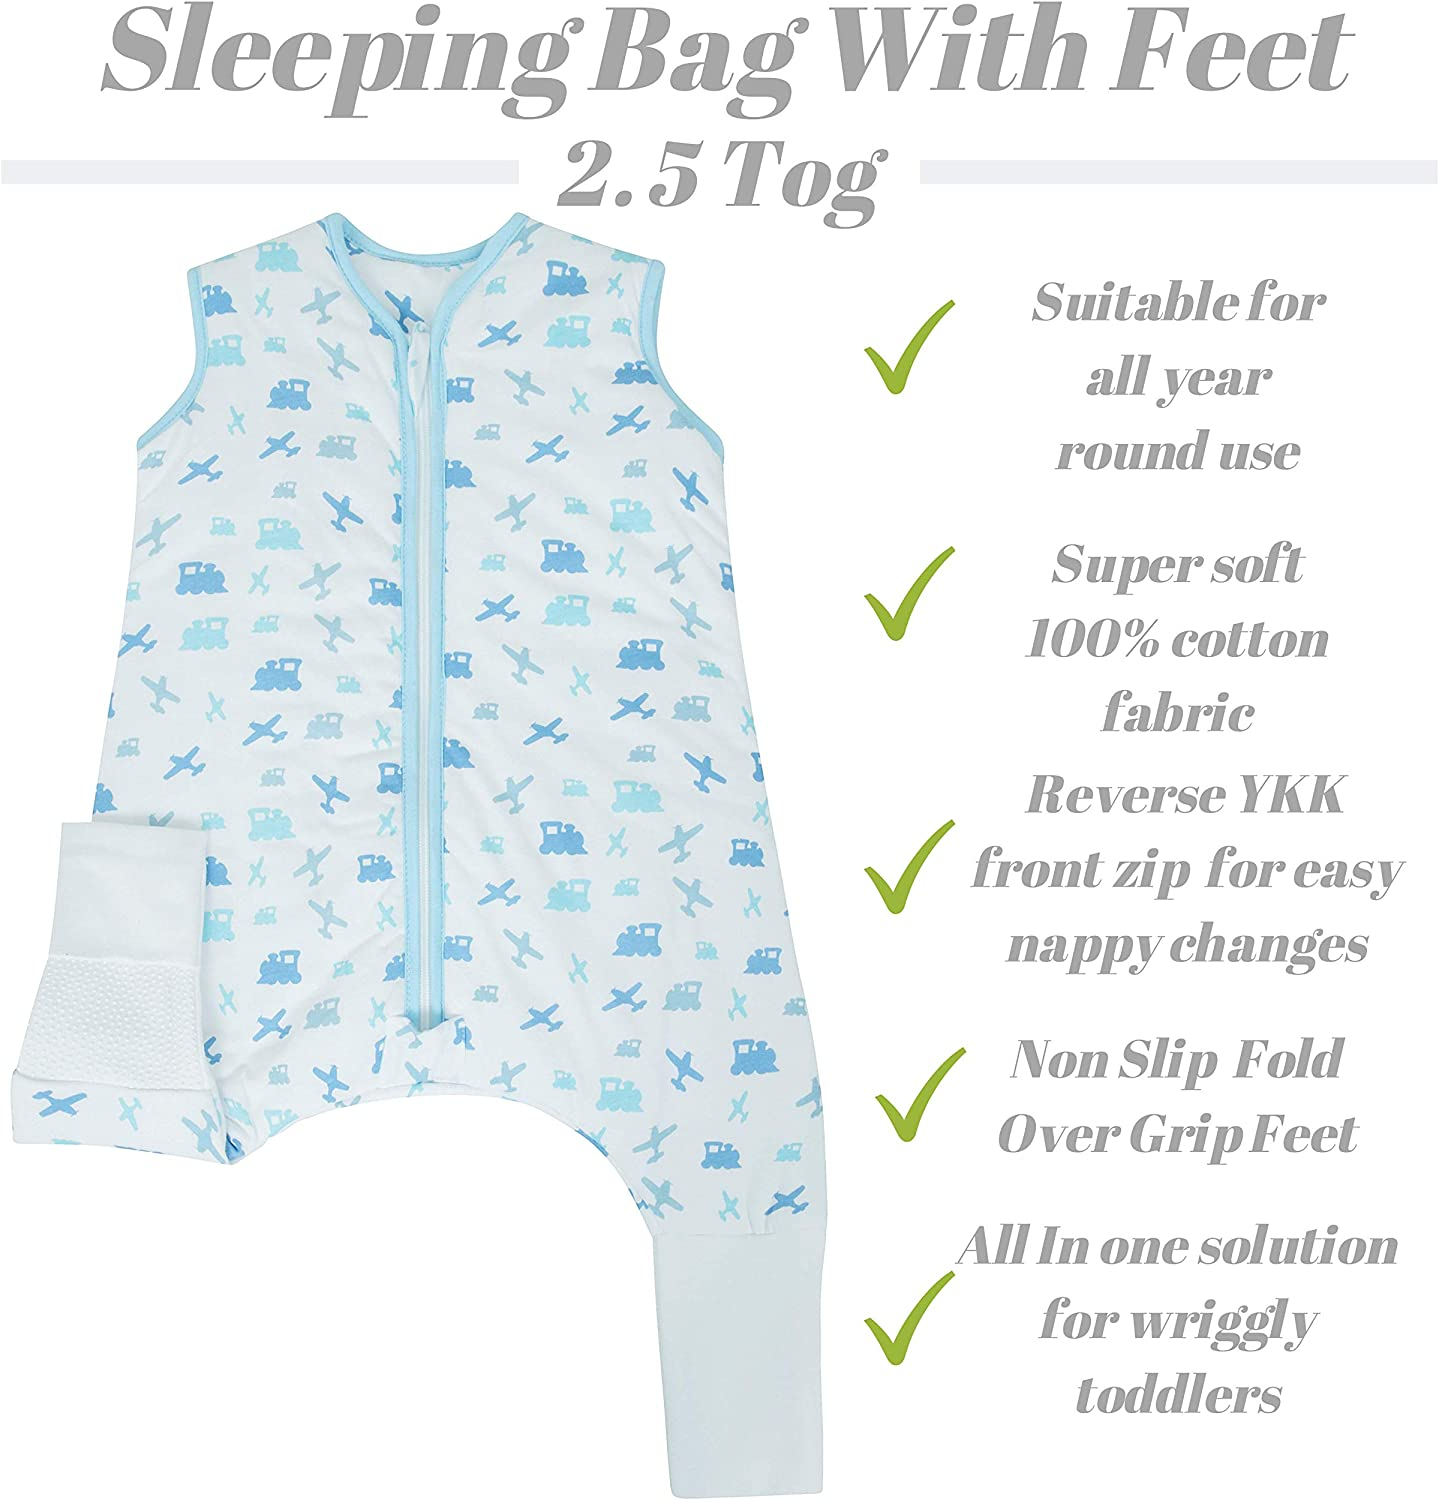 100/% Cotton Unisex Nursery Toddler Child Sleep Bag Planes and Trains 2-3 Years Snoozebag Baby Sleeping Bag with Legs and Non Slip Fold Over Grippy Feet Romper Jumpsuit 2.5 Tog